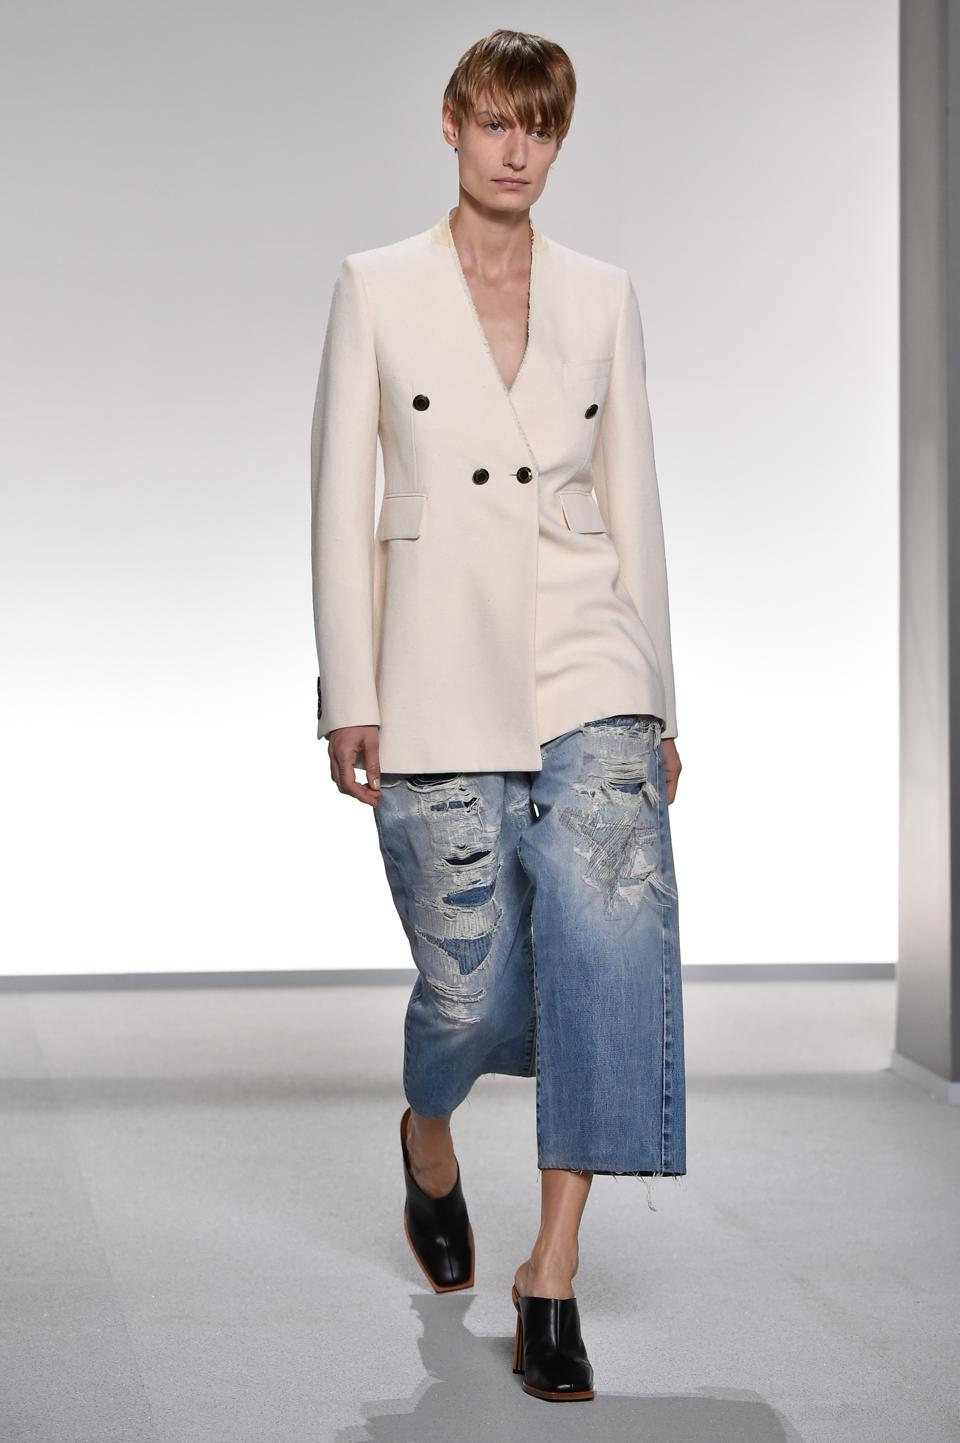 Denim Trends 2020.Top 10 Trends From The Spring 2020 Fashion Shows